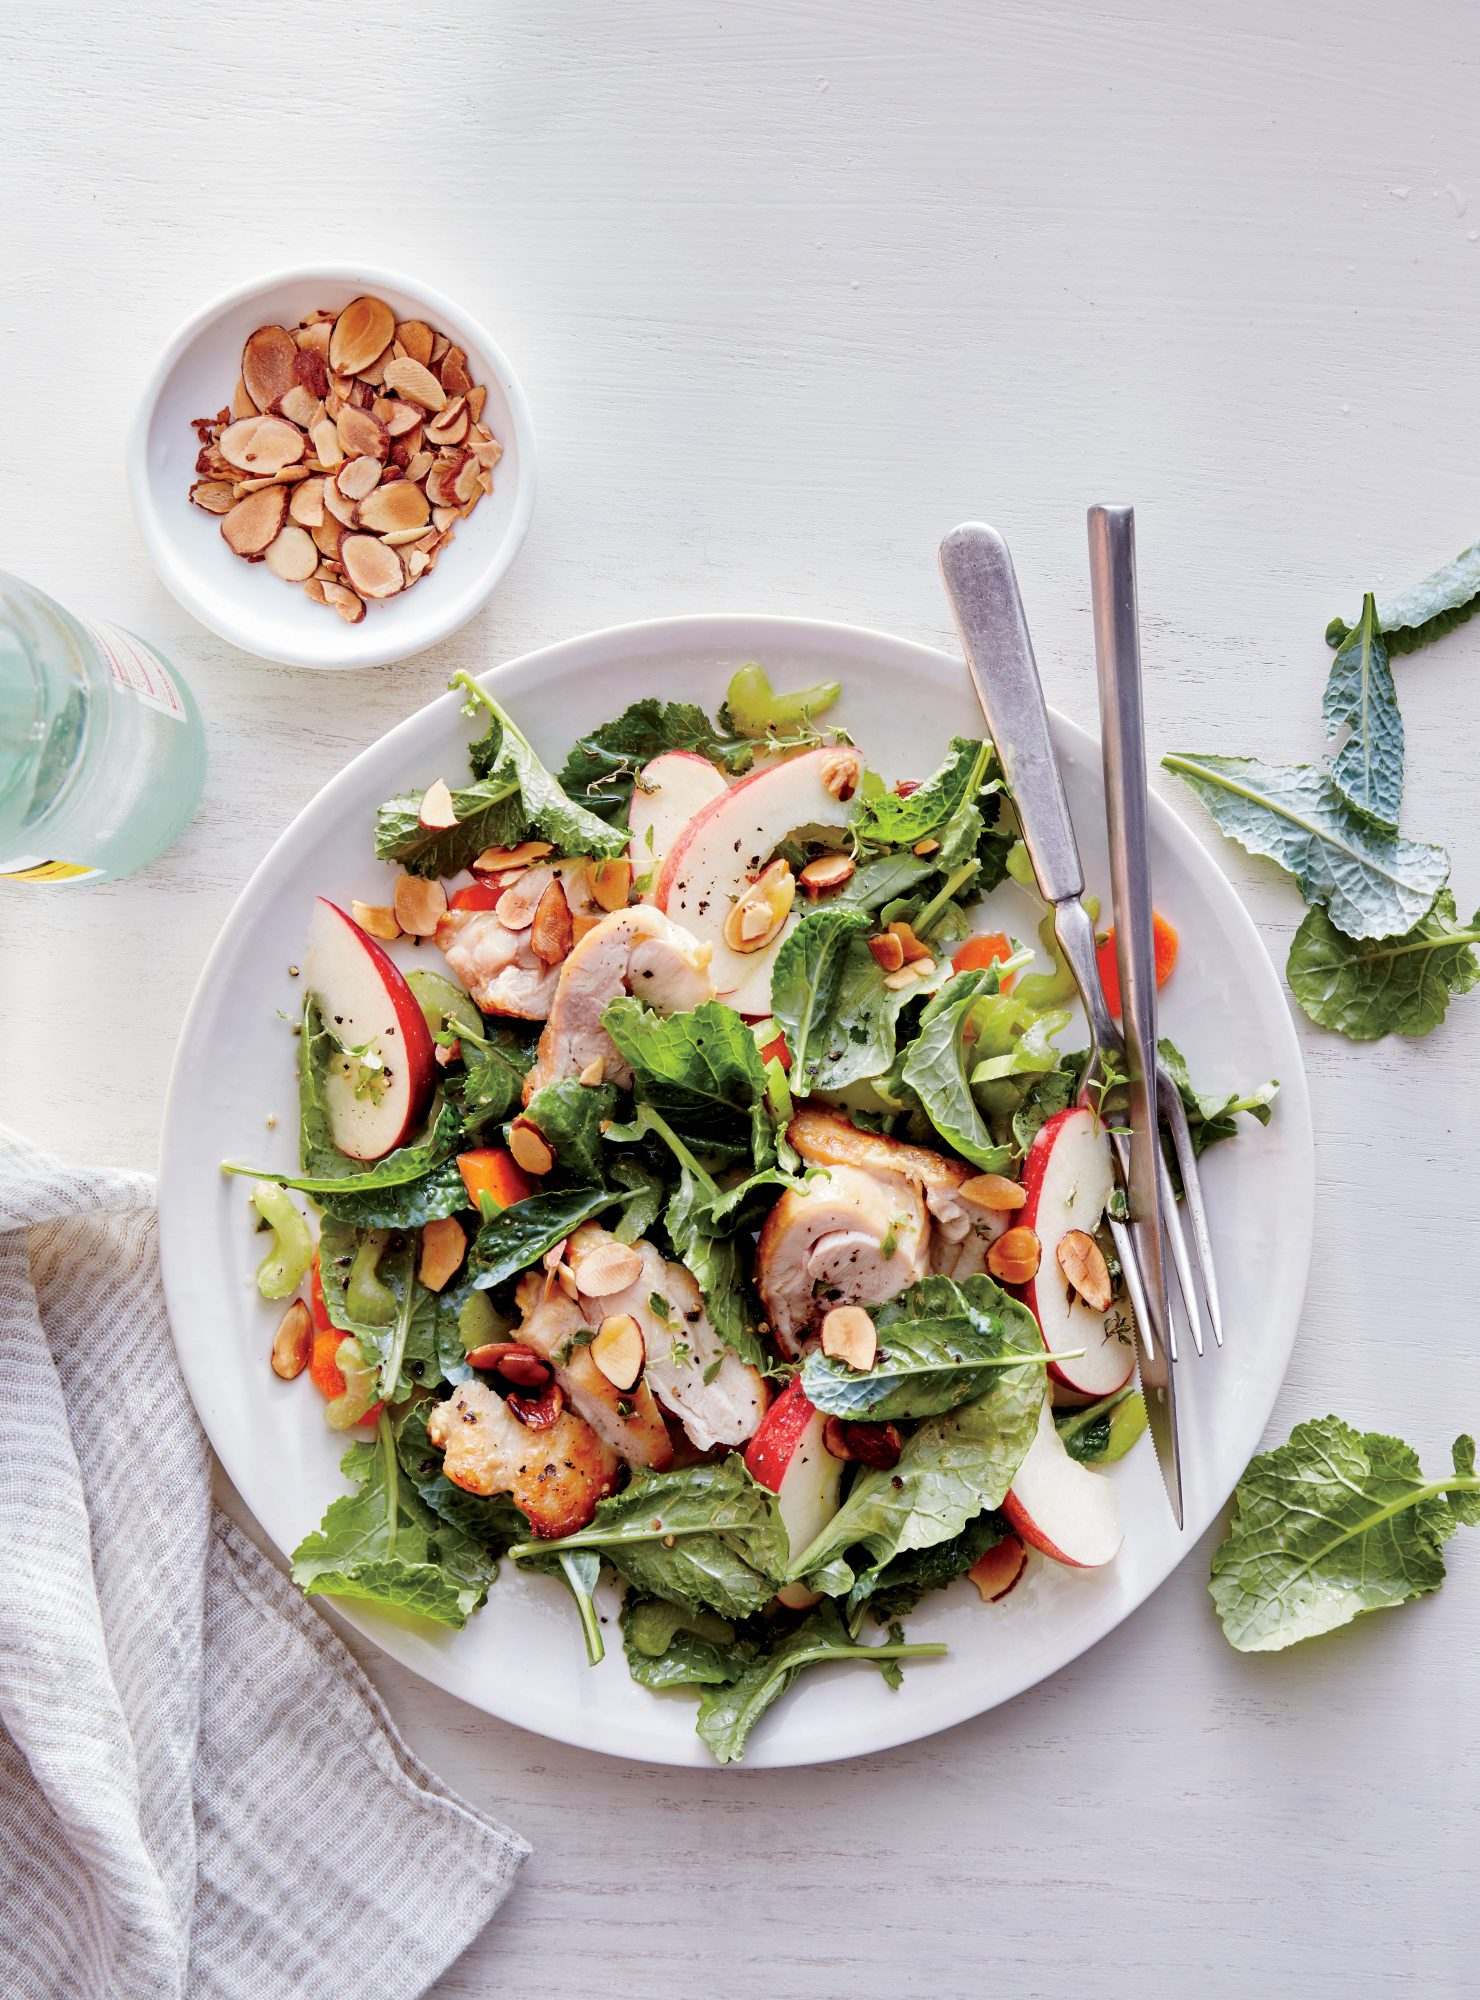 Easy, Healthy Main Course Recipes from Dr. Gourmet  Main Dish Chicken